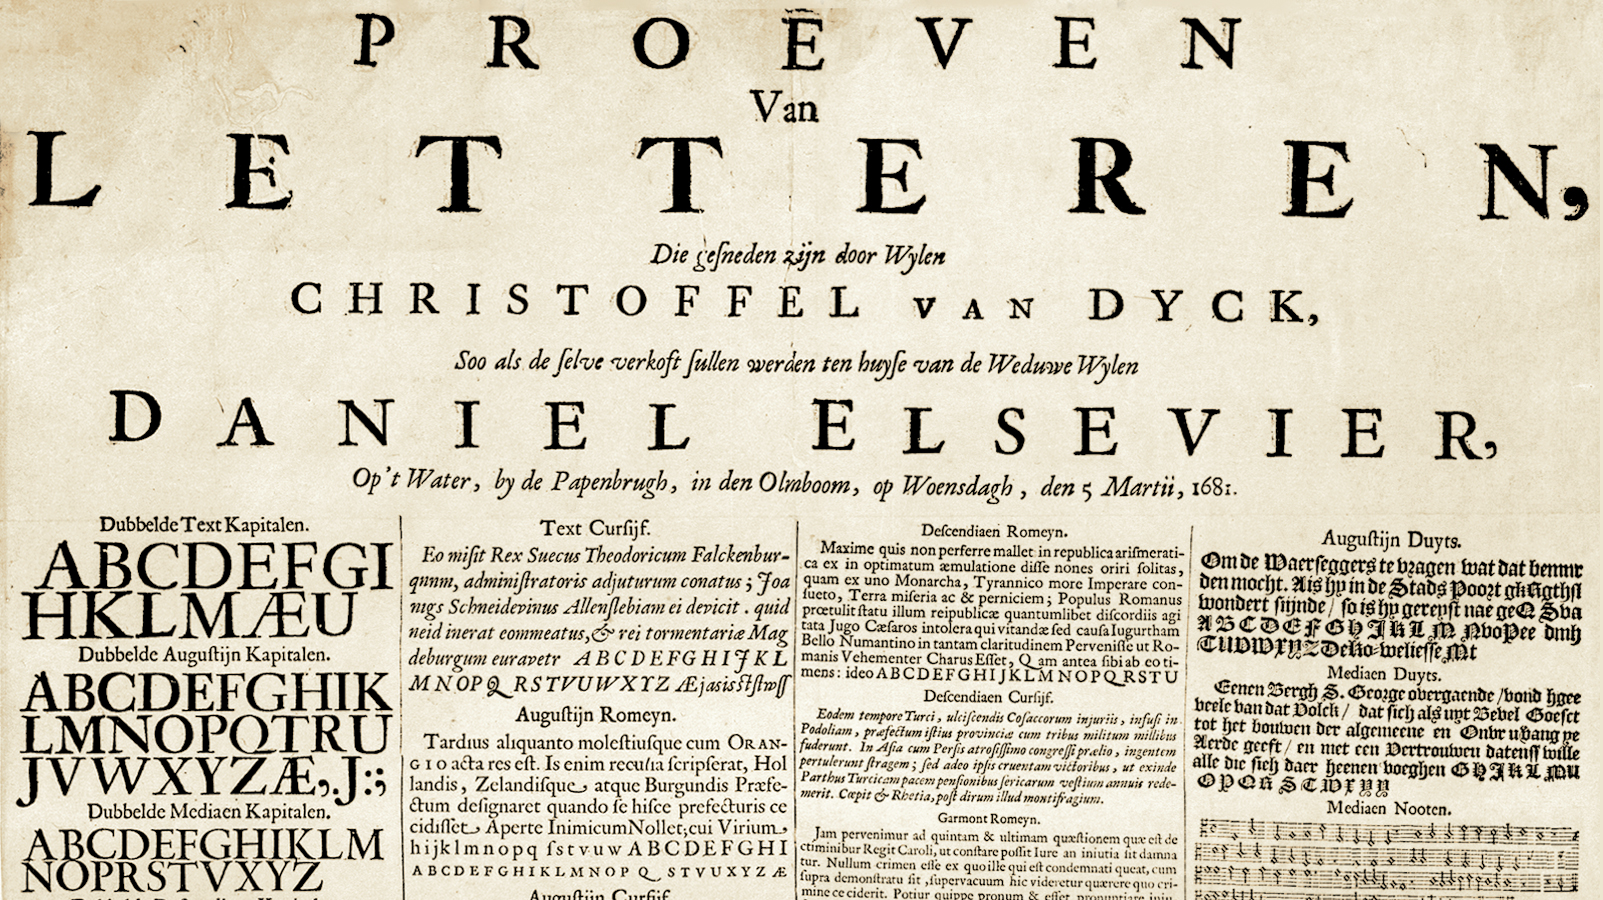 Type specimen for Christoffel van Dyck's types, available from the Elsevier widow